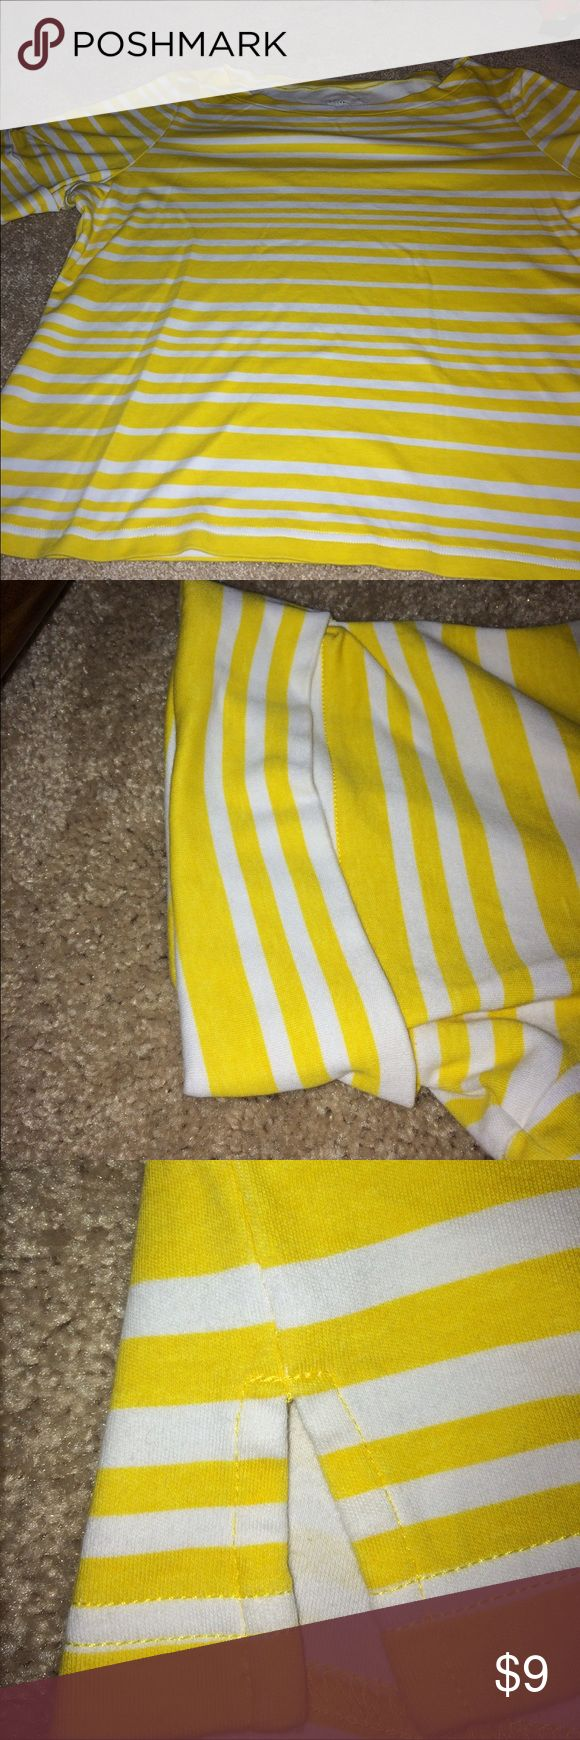 Cotton pull over shirt Yellow&White strip cotton shirt. 3/4 length sleeves. Kim Rogers Tops Tees - Short Sleeve